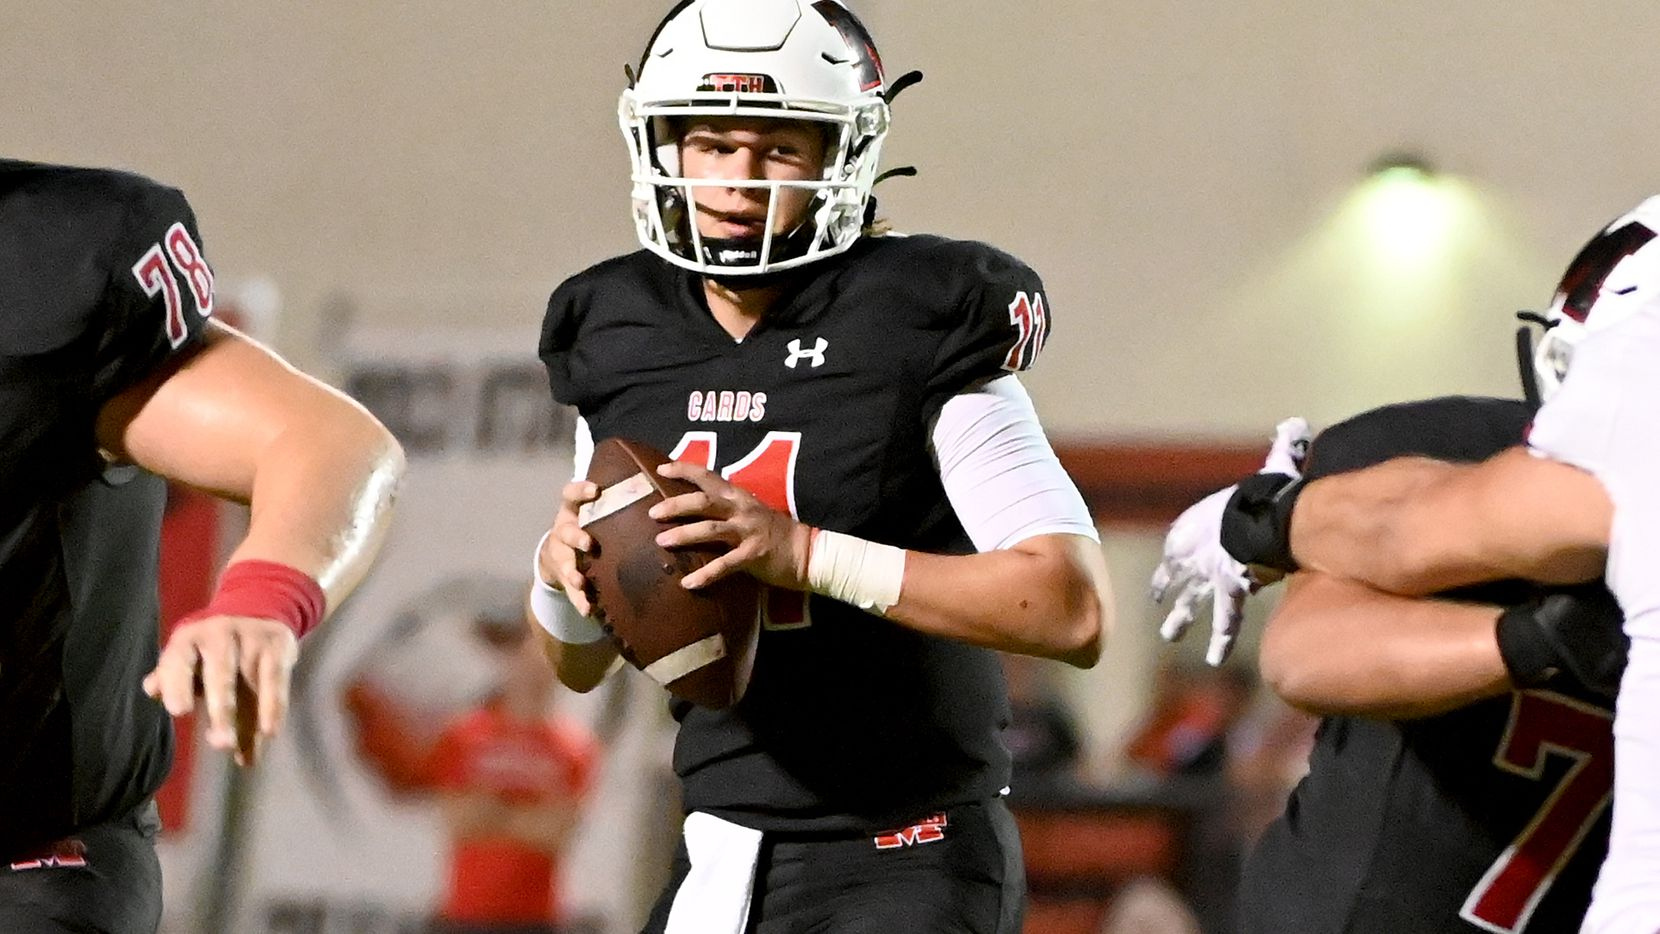 Melissa's quarterback Sam Fennegan (11) looks to pass in the first half of a high school football game between Argyle and Melissa, Friday, Oct. 1, 2021, in Melissa, Texas. (Matt Strasen/Special Contributor)